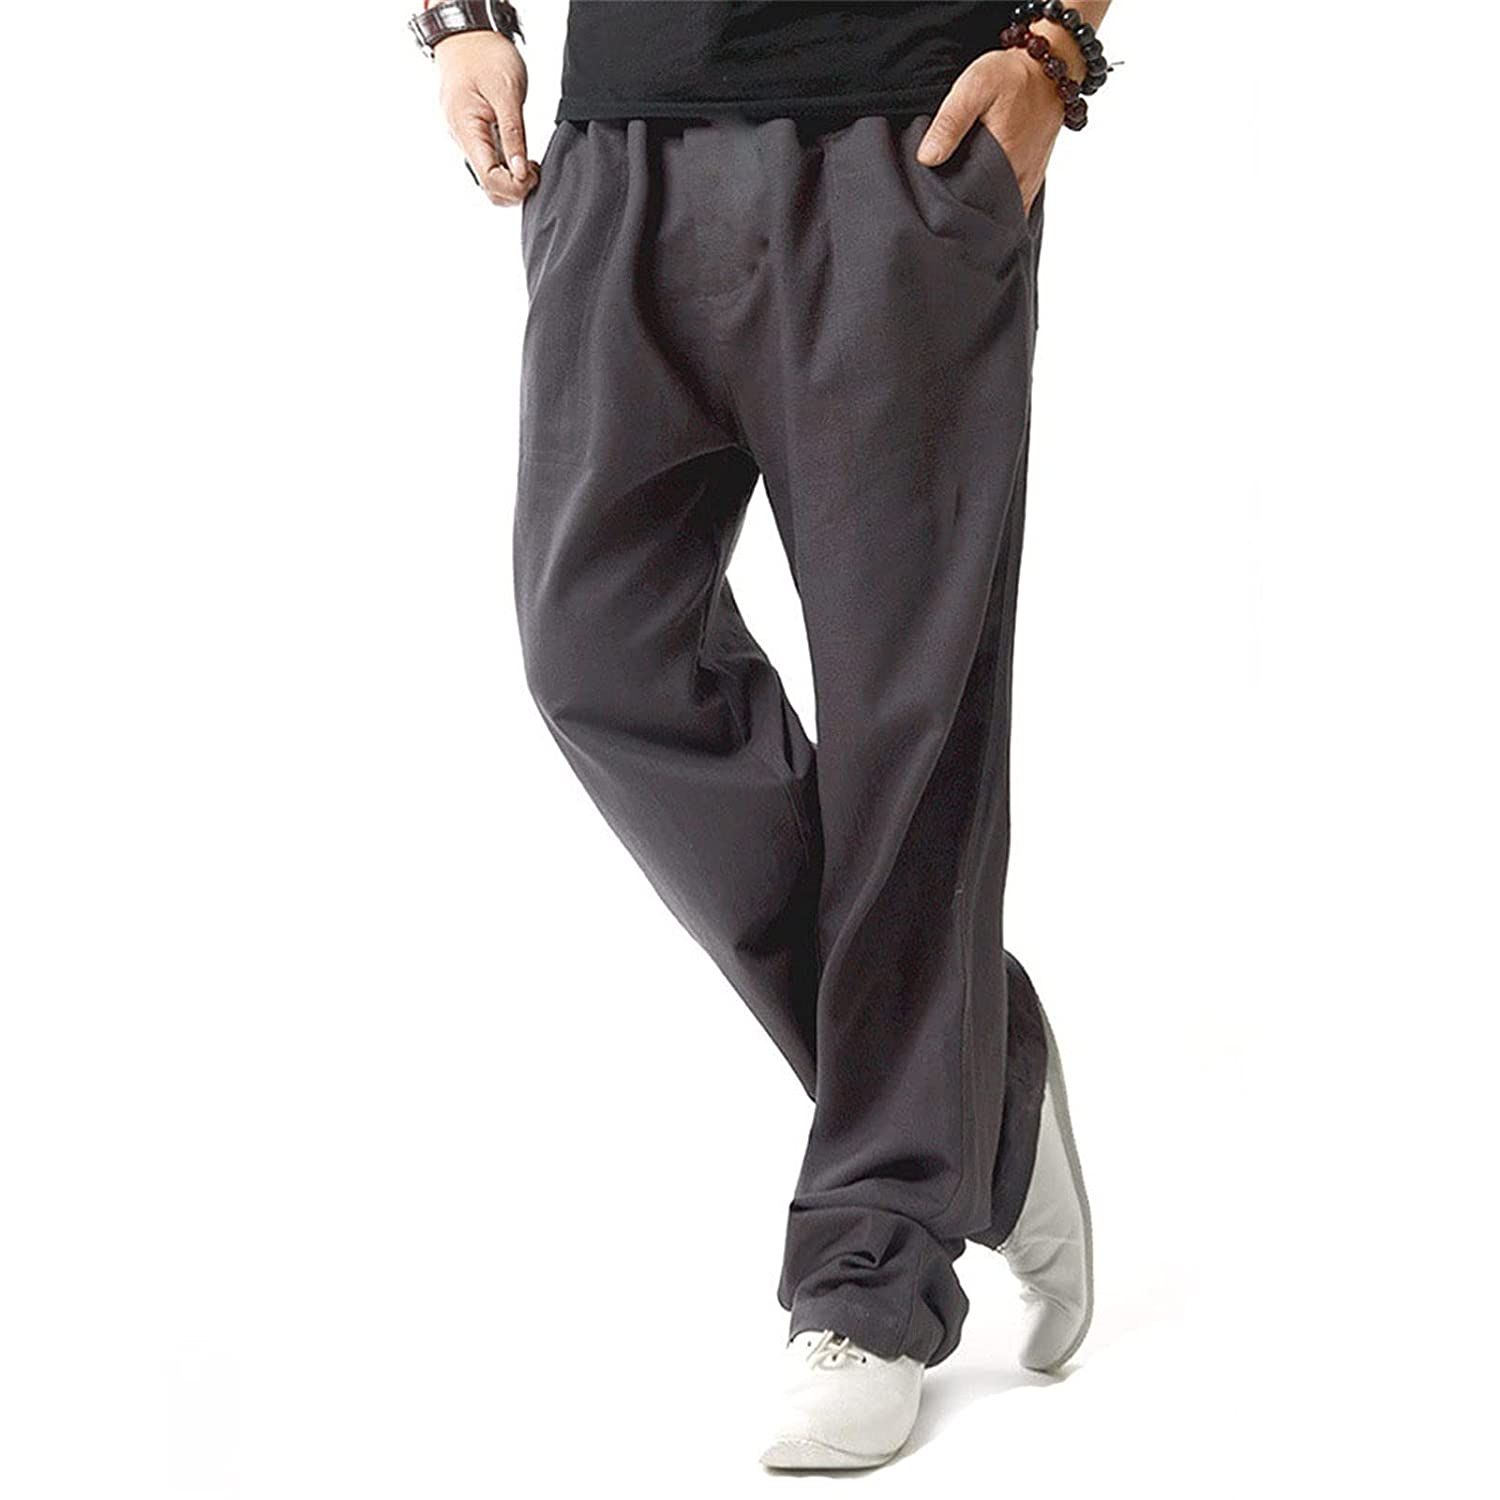 Men's Drawstring Casual Summer Beach Loose Trousers Linen Pants with Elastic Waistband Sweatpants Joggers (XX-Large,Gray)